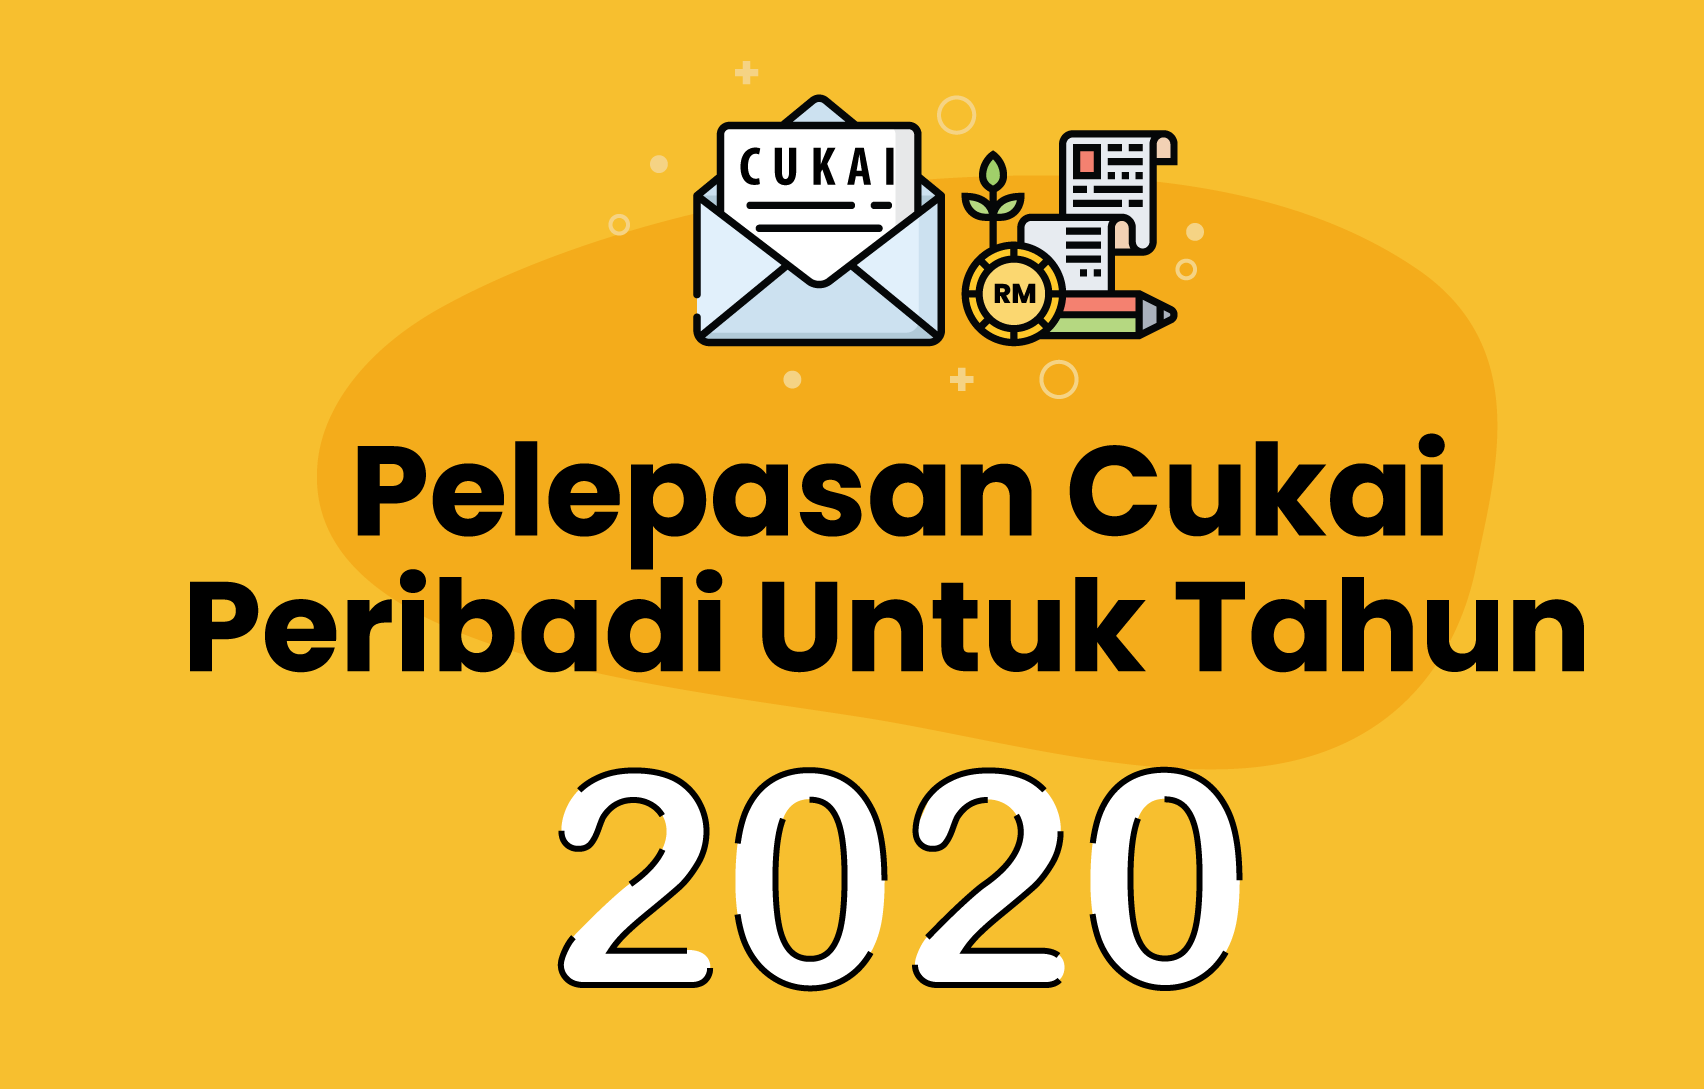 Personal Tax Reliefs For 2020 31 - Multiply - Planning & Budgeting